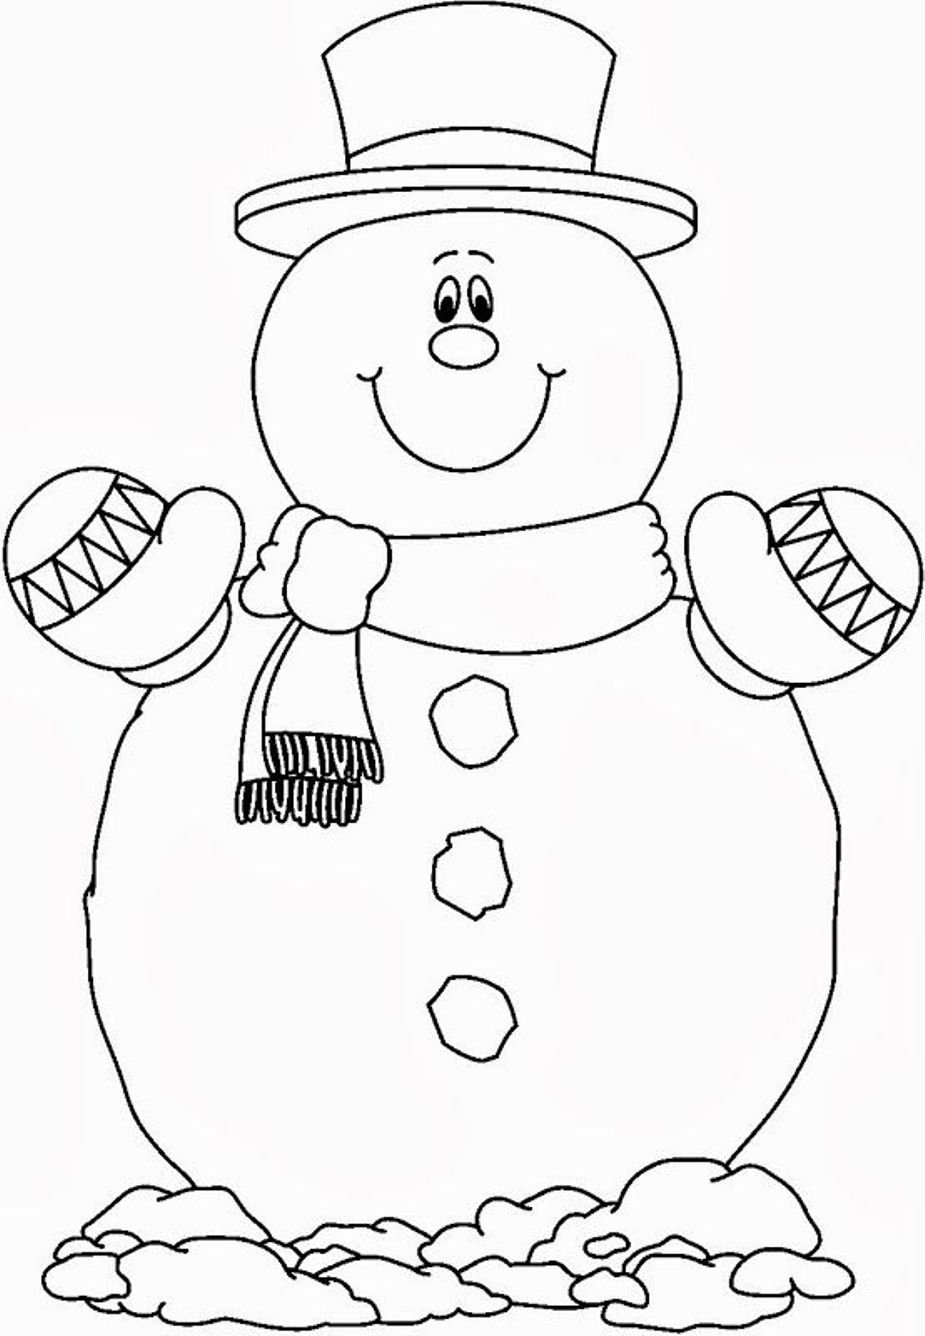 Beautiful Snowman Coloring Pages 24 With Additional Coloring Pages